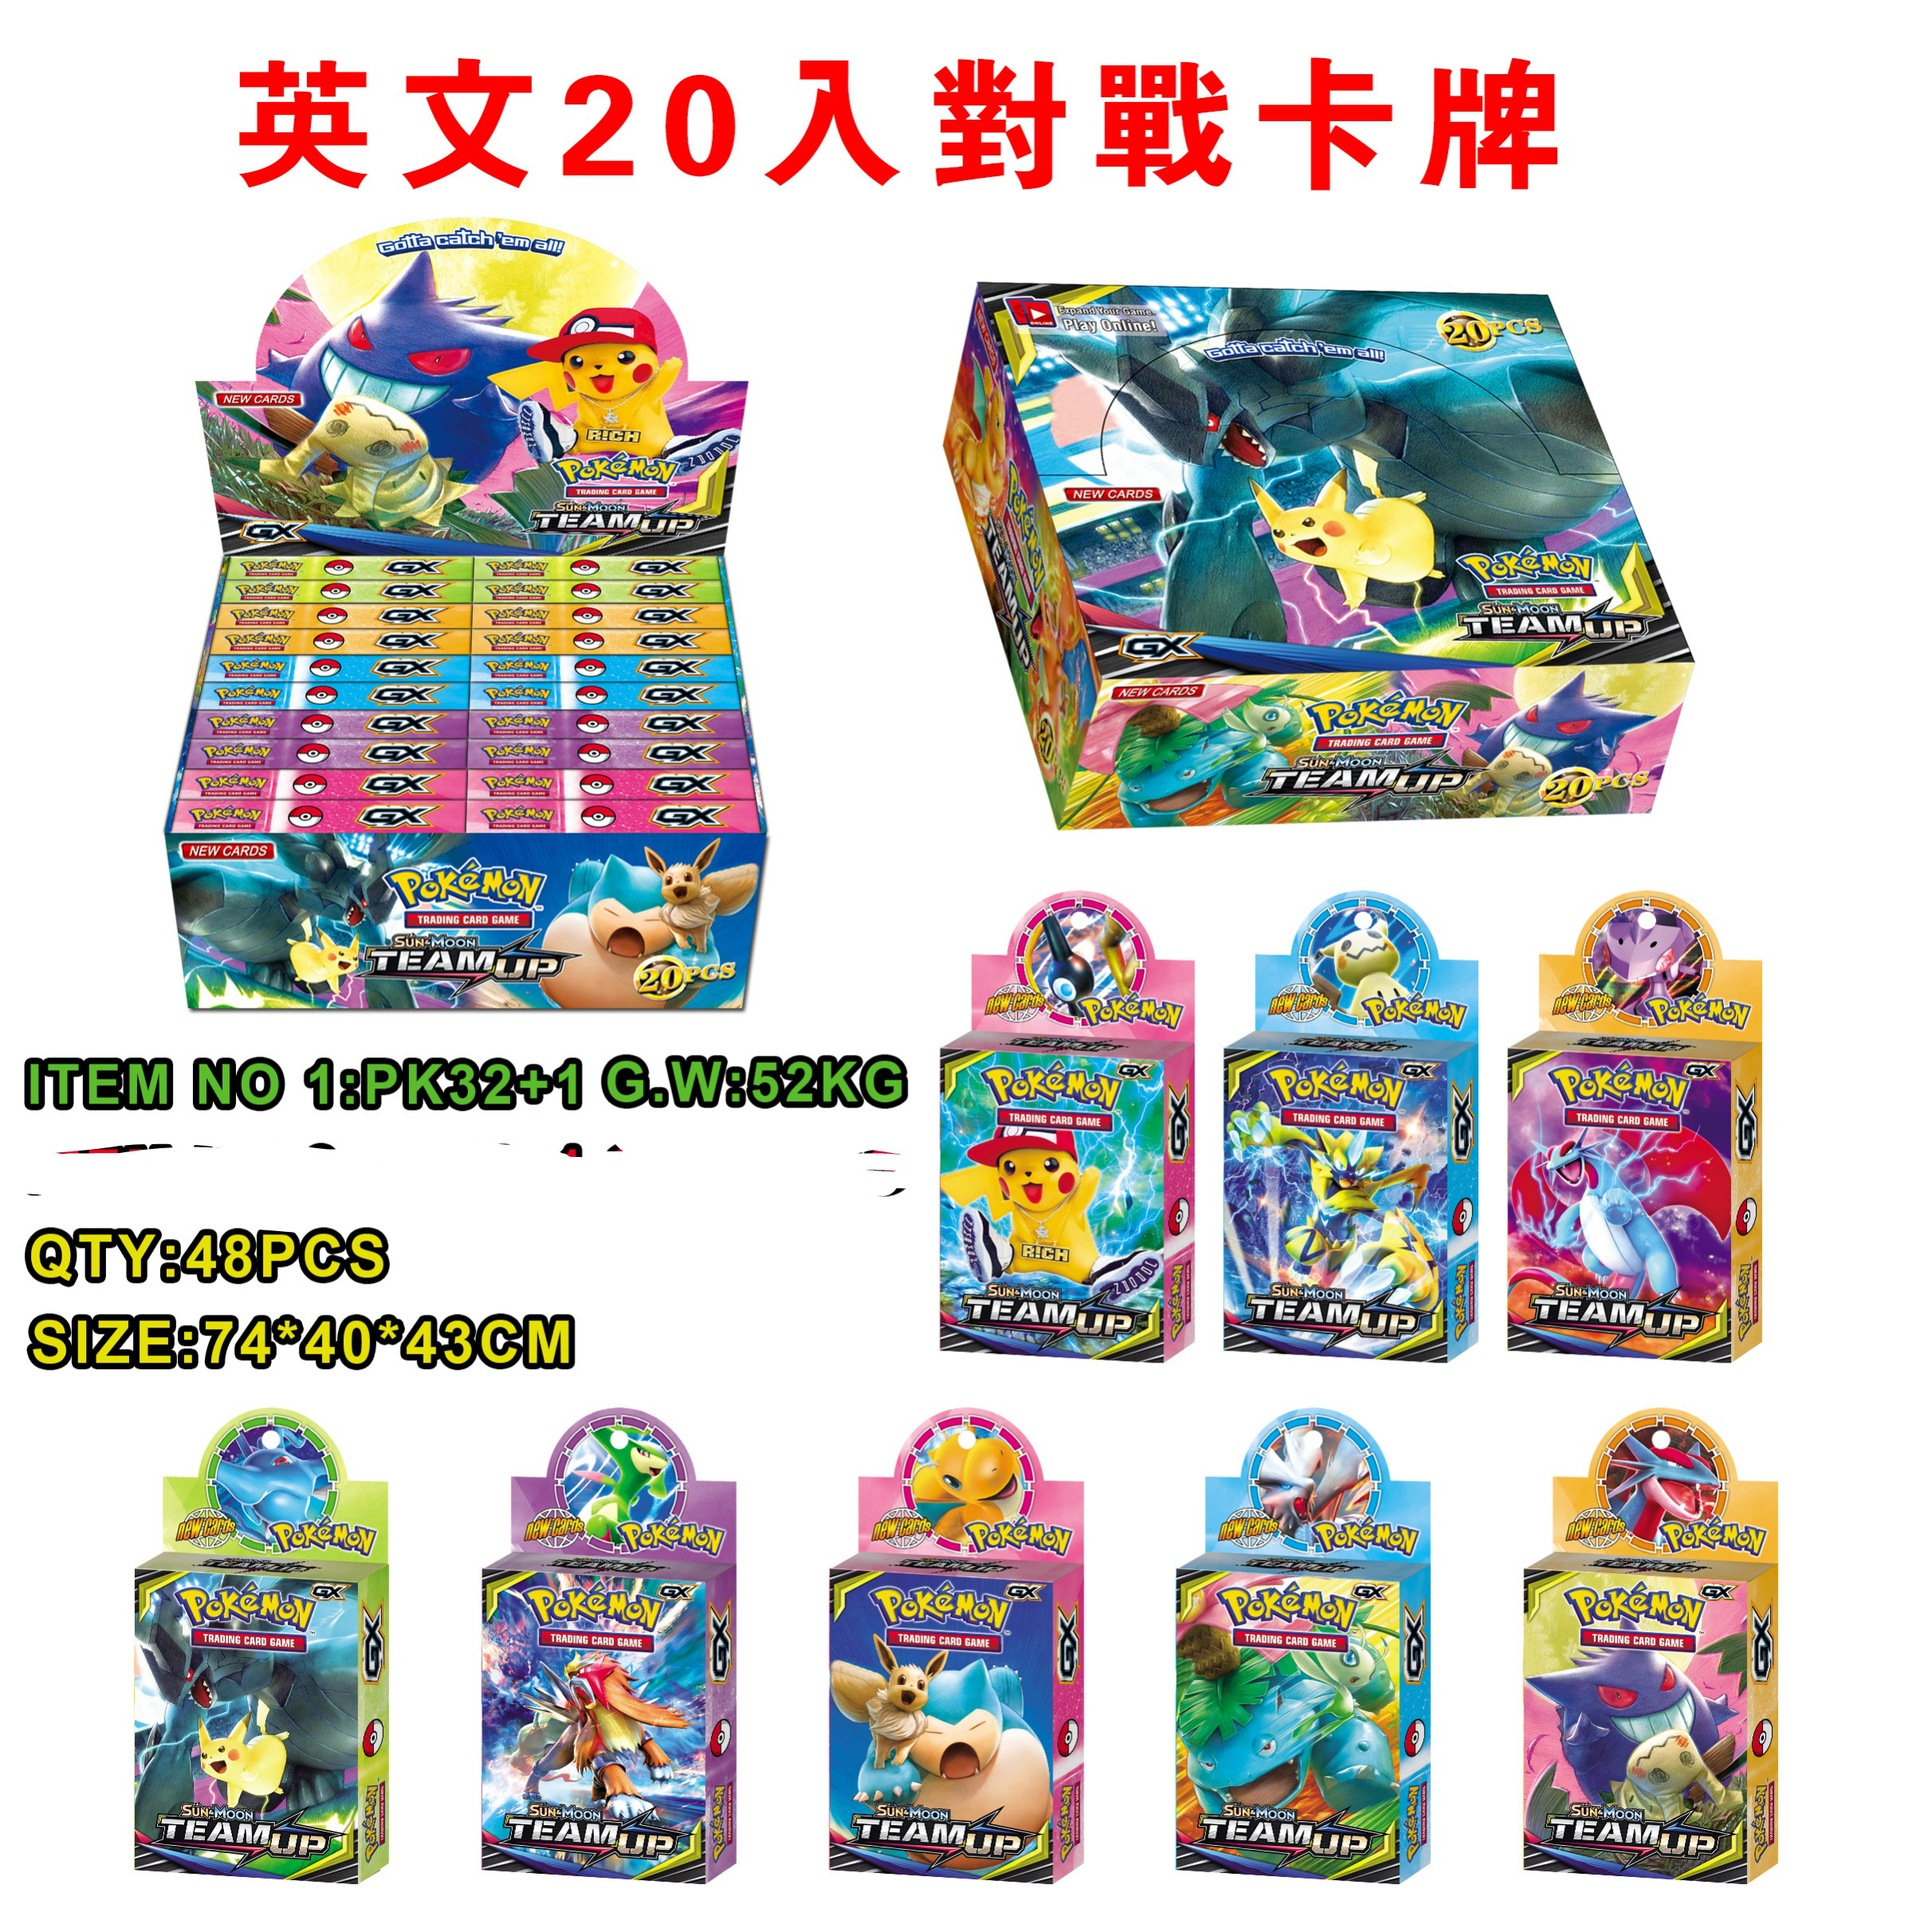 500pcs Newest TAKARA TOMY Pet Pokemon Cards Contain Flash Card Pokemon TEAM UP Cards   Kids Toys  Pokemon Cards Gx